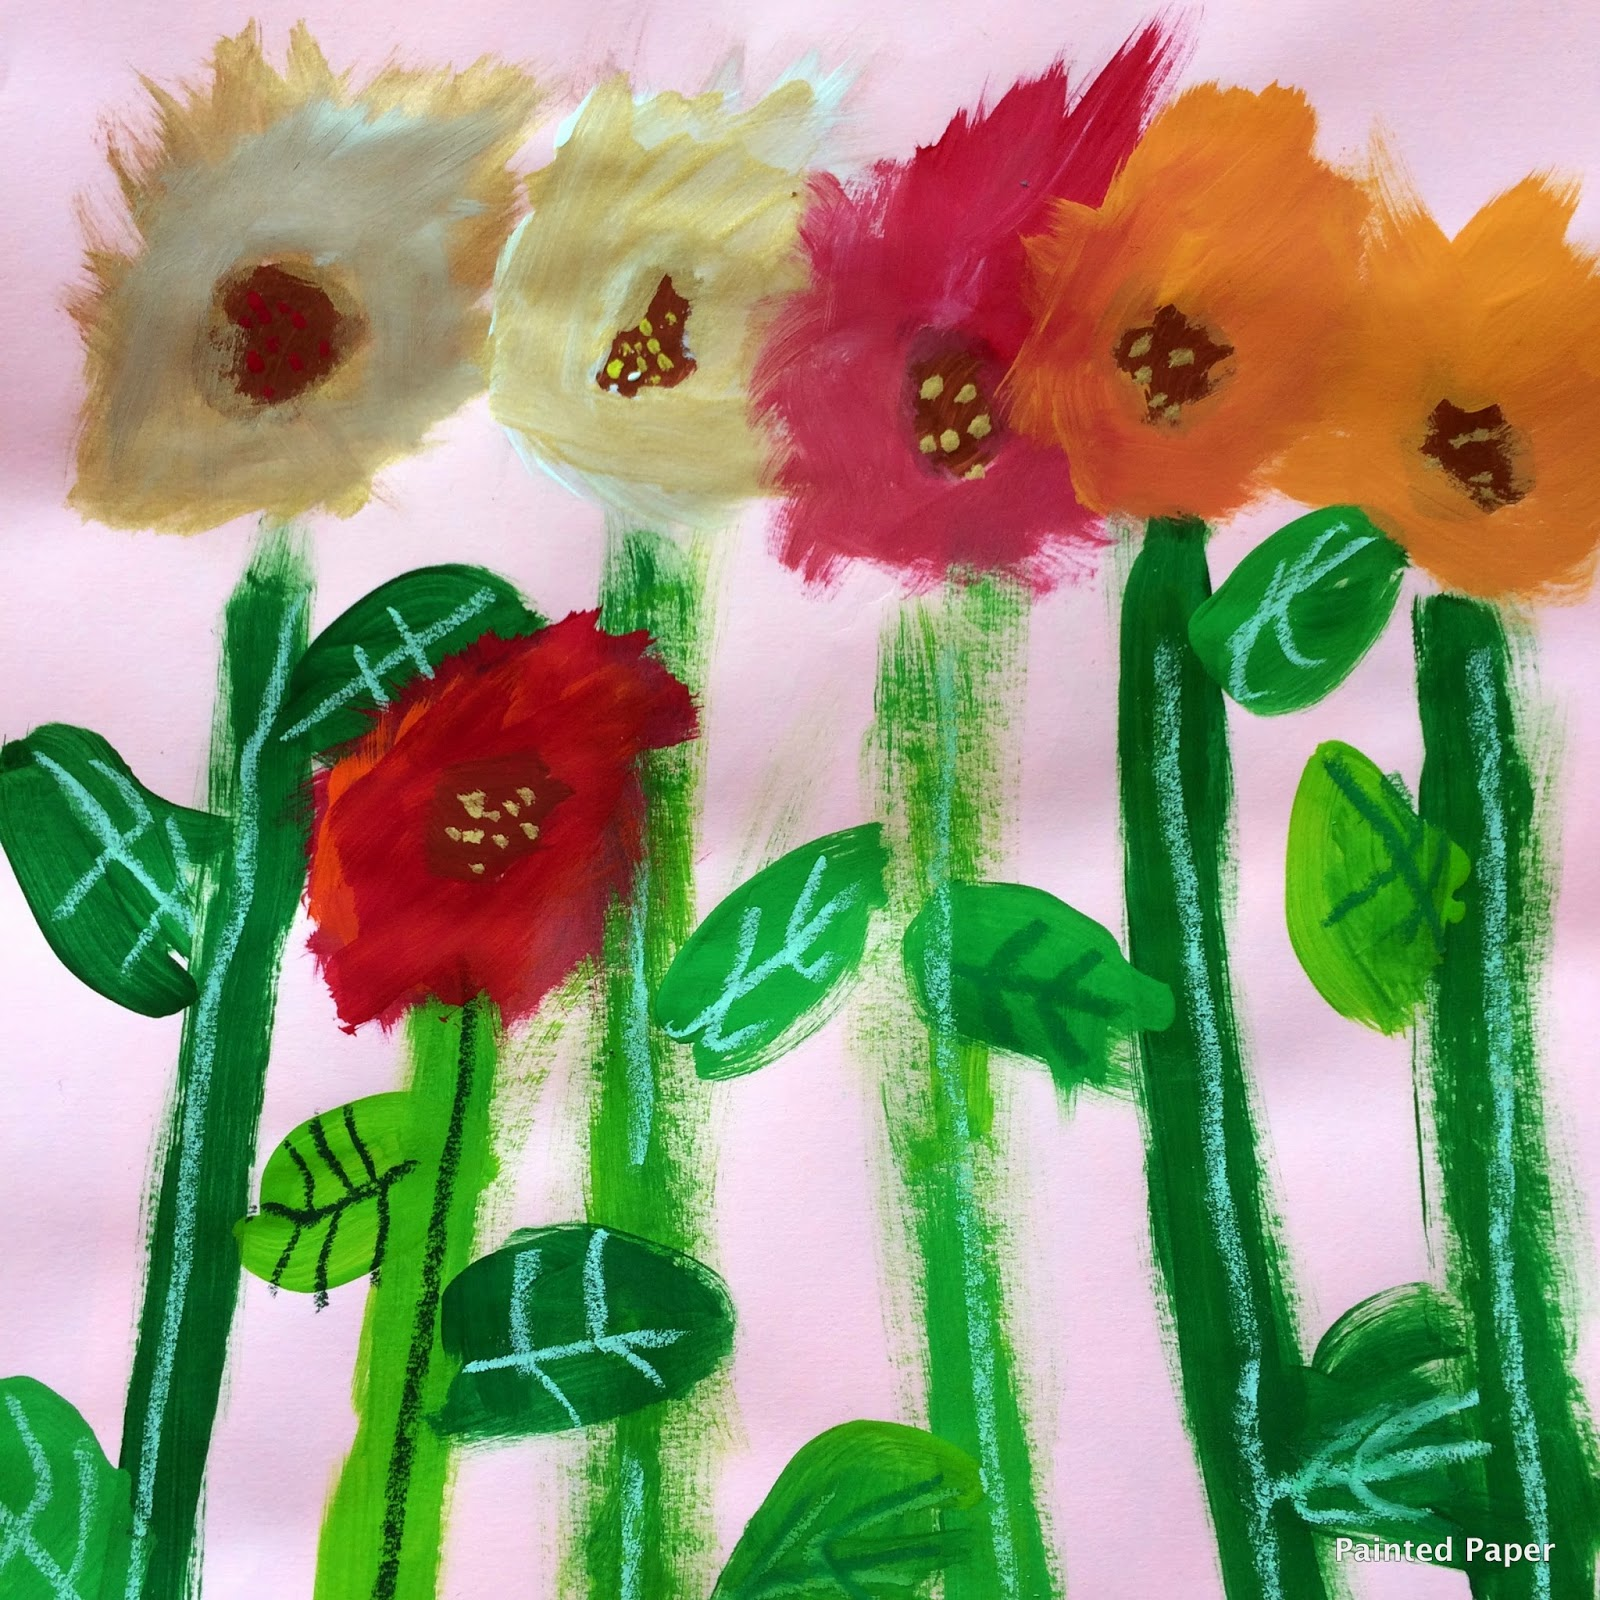 Painted paper monet 39 s garden flowers for Painted paper flowers